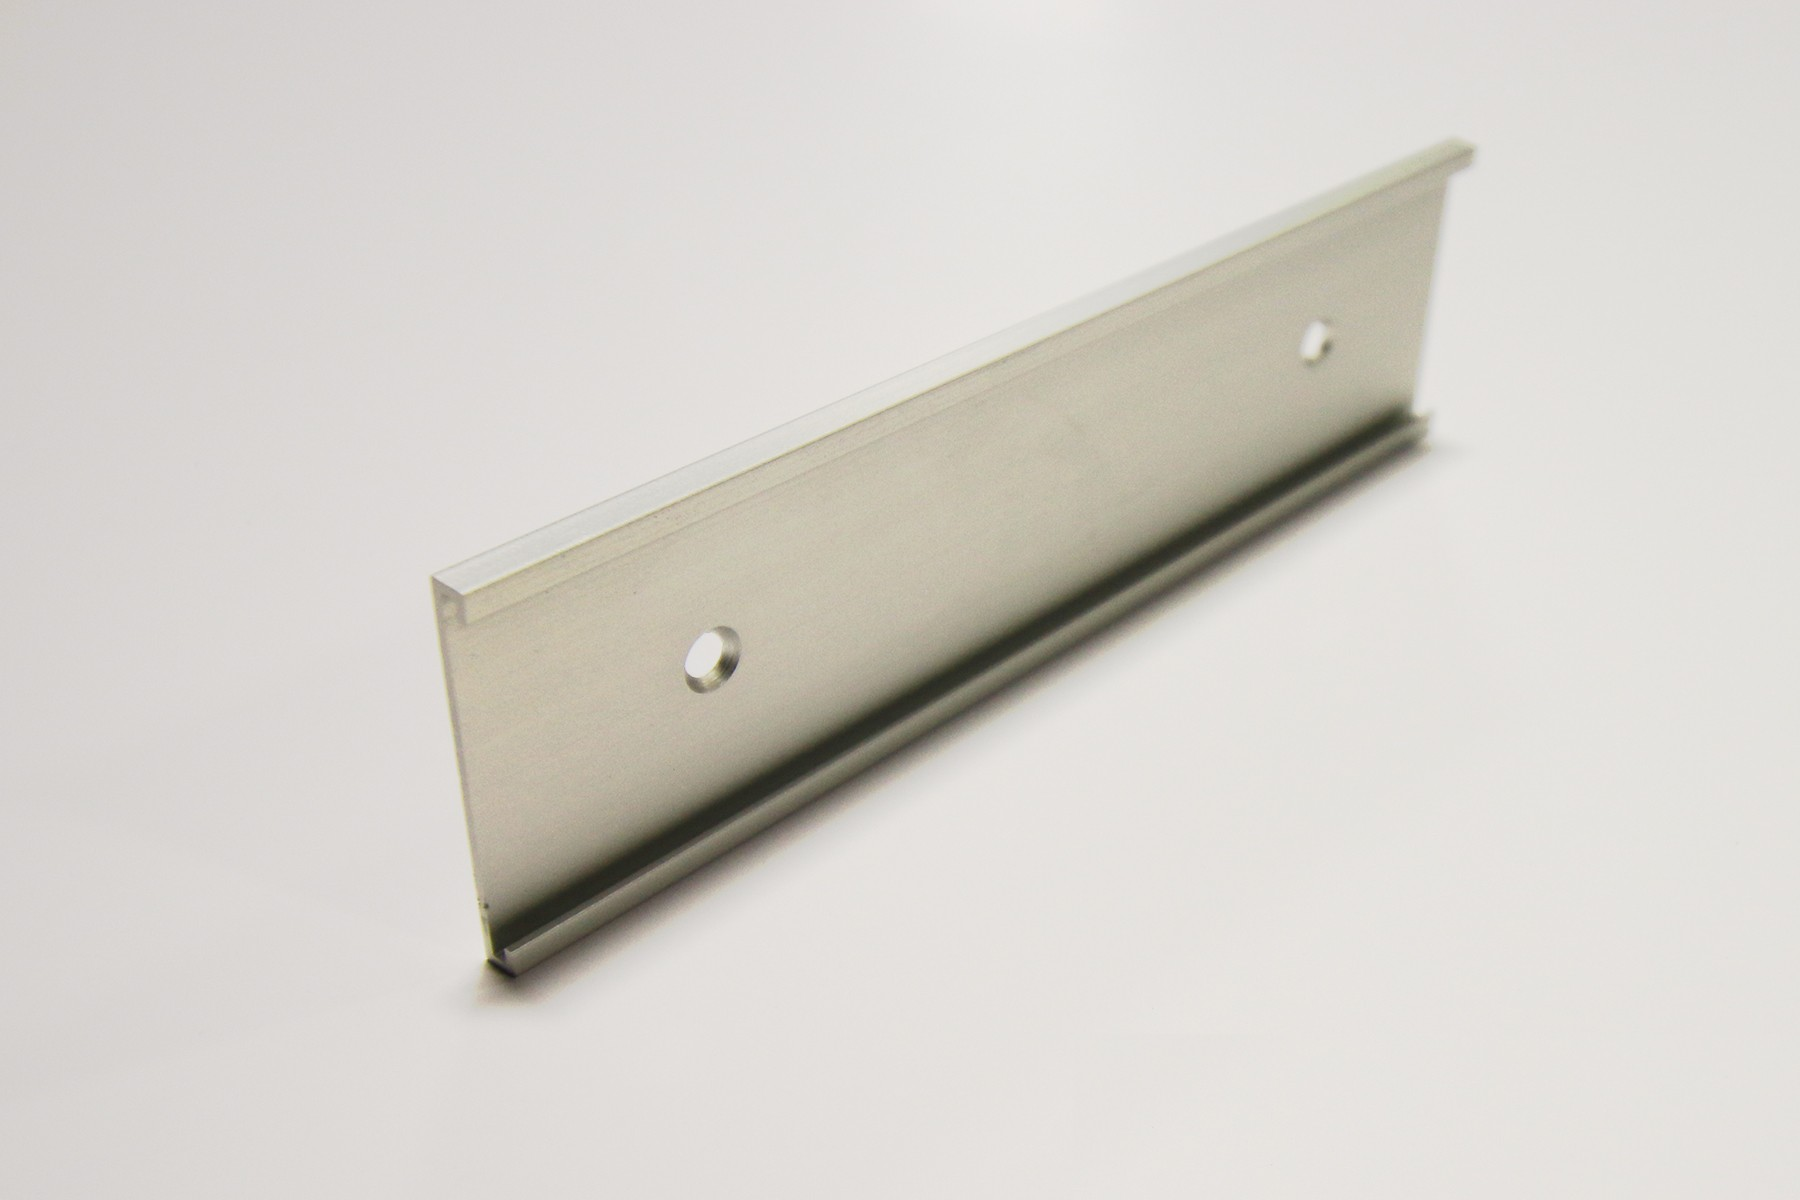 1-1/2 x 6 Wall Holder, Satin Silver